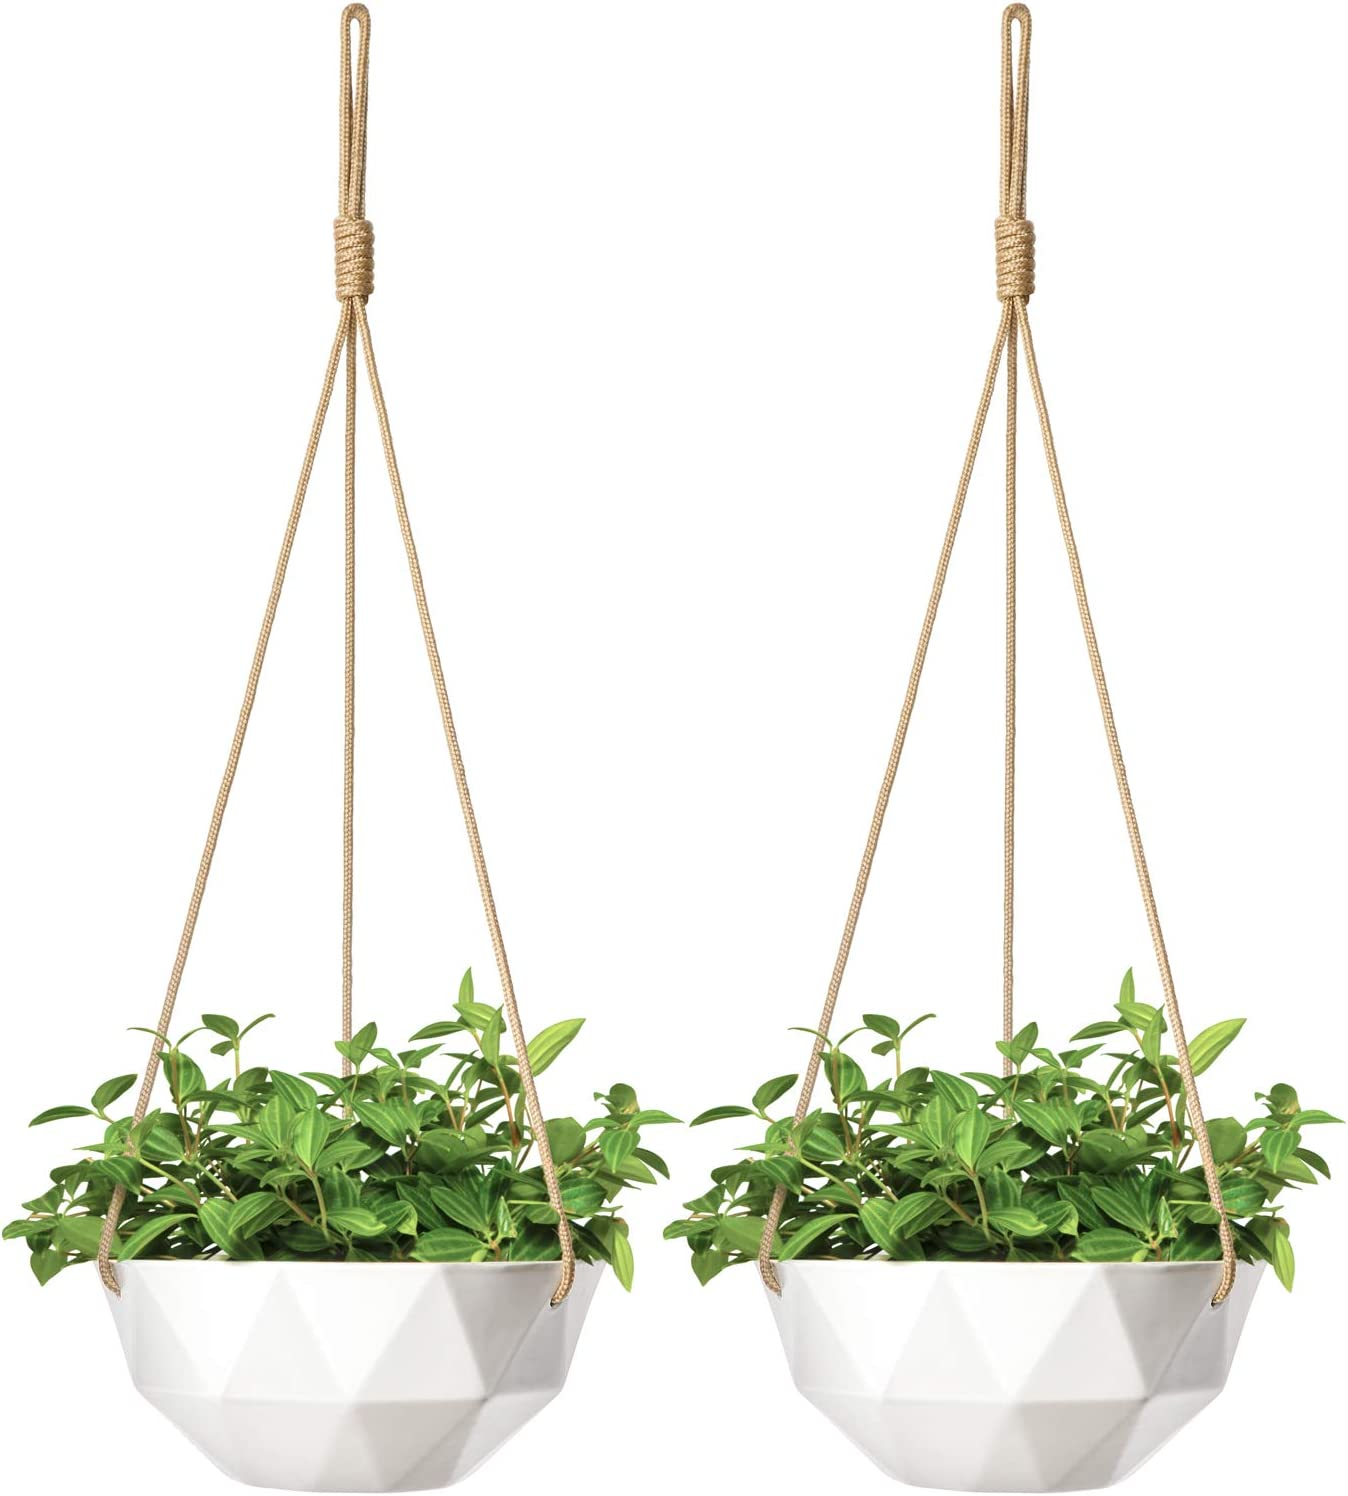 Mkono 2 Pack Ceramic Hanging Planter Modern Geometric Flower Plant Pot 9 Inch Porcelain Hanging Basket with Rope Hanger for Indoor Outdoor Herbs Ivy Crawling Plants, White